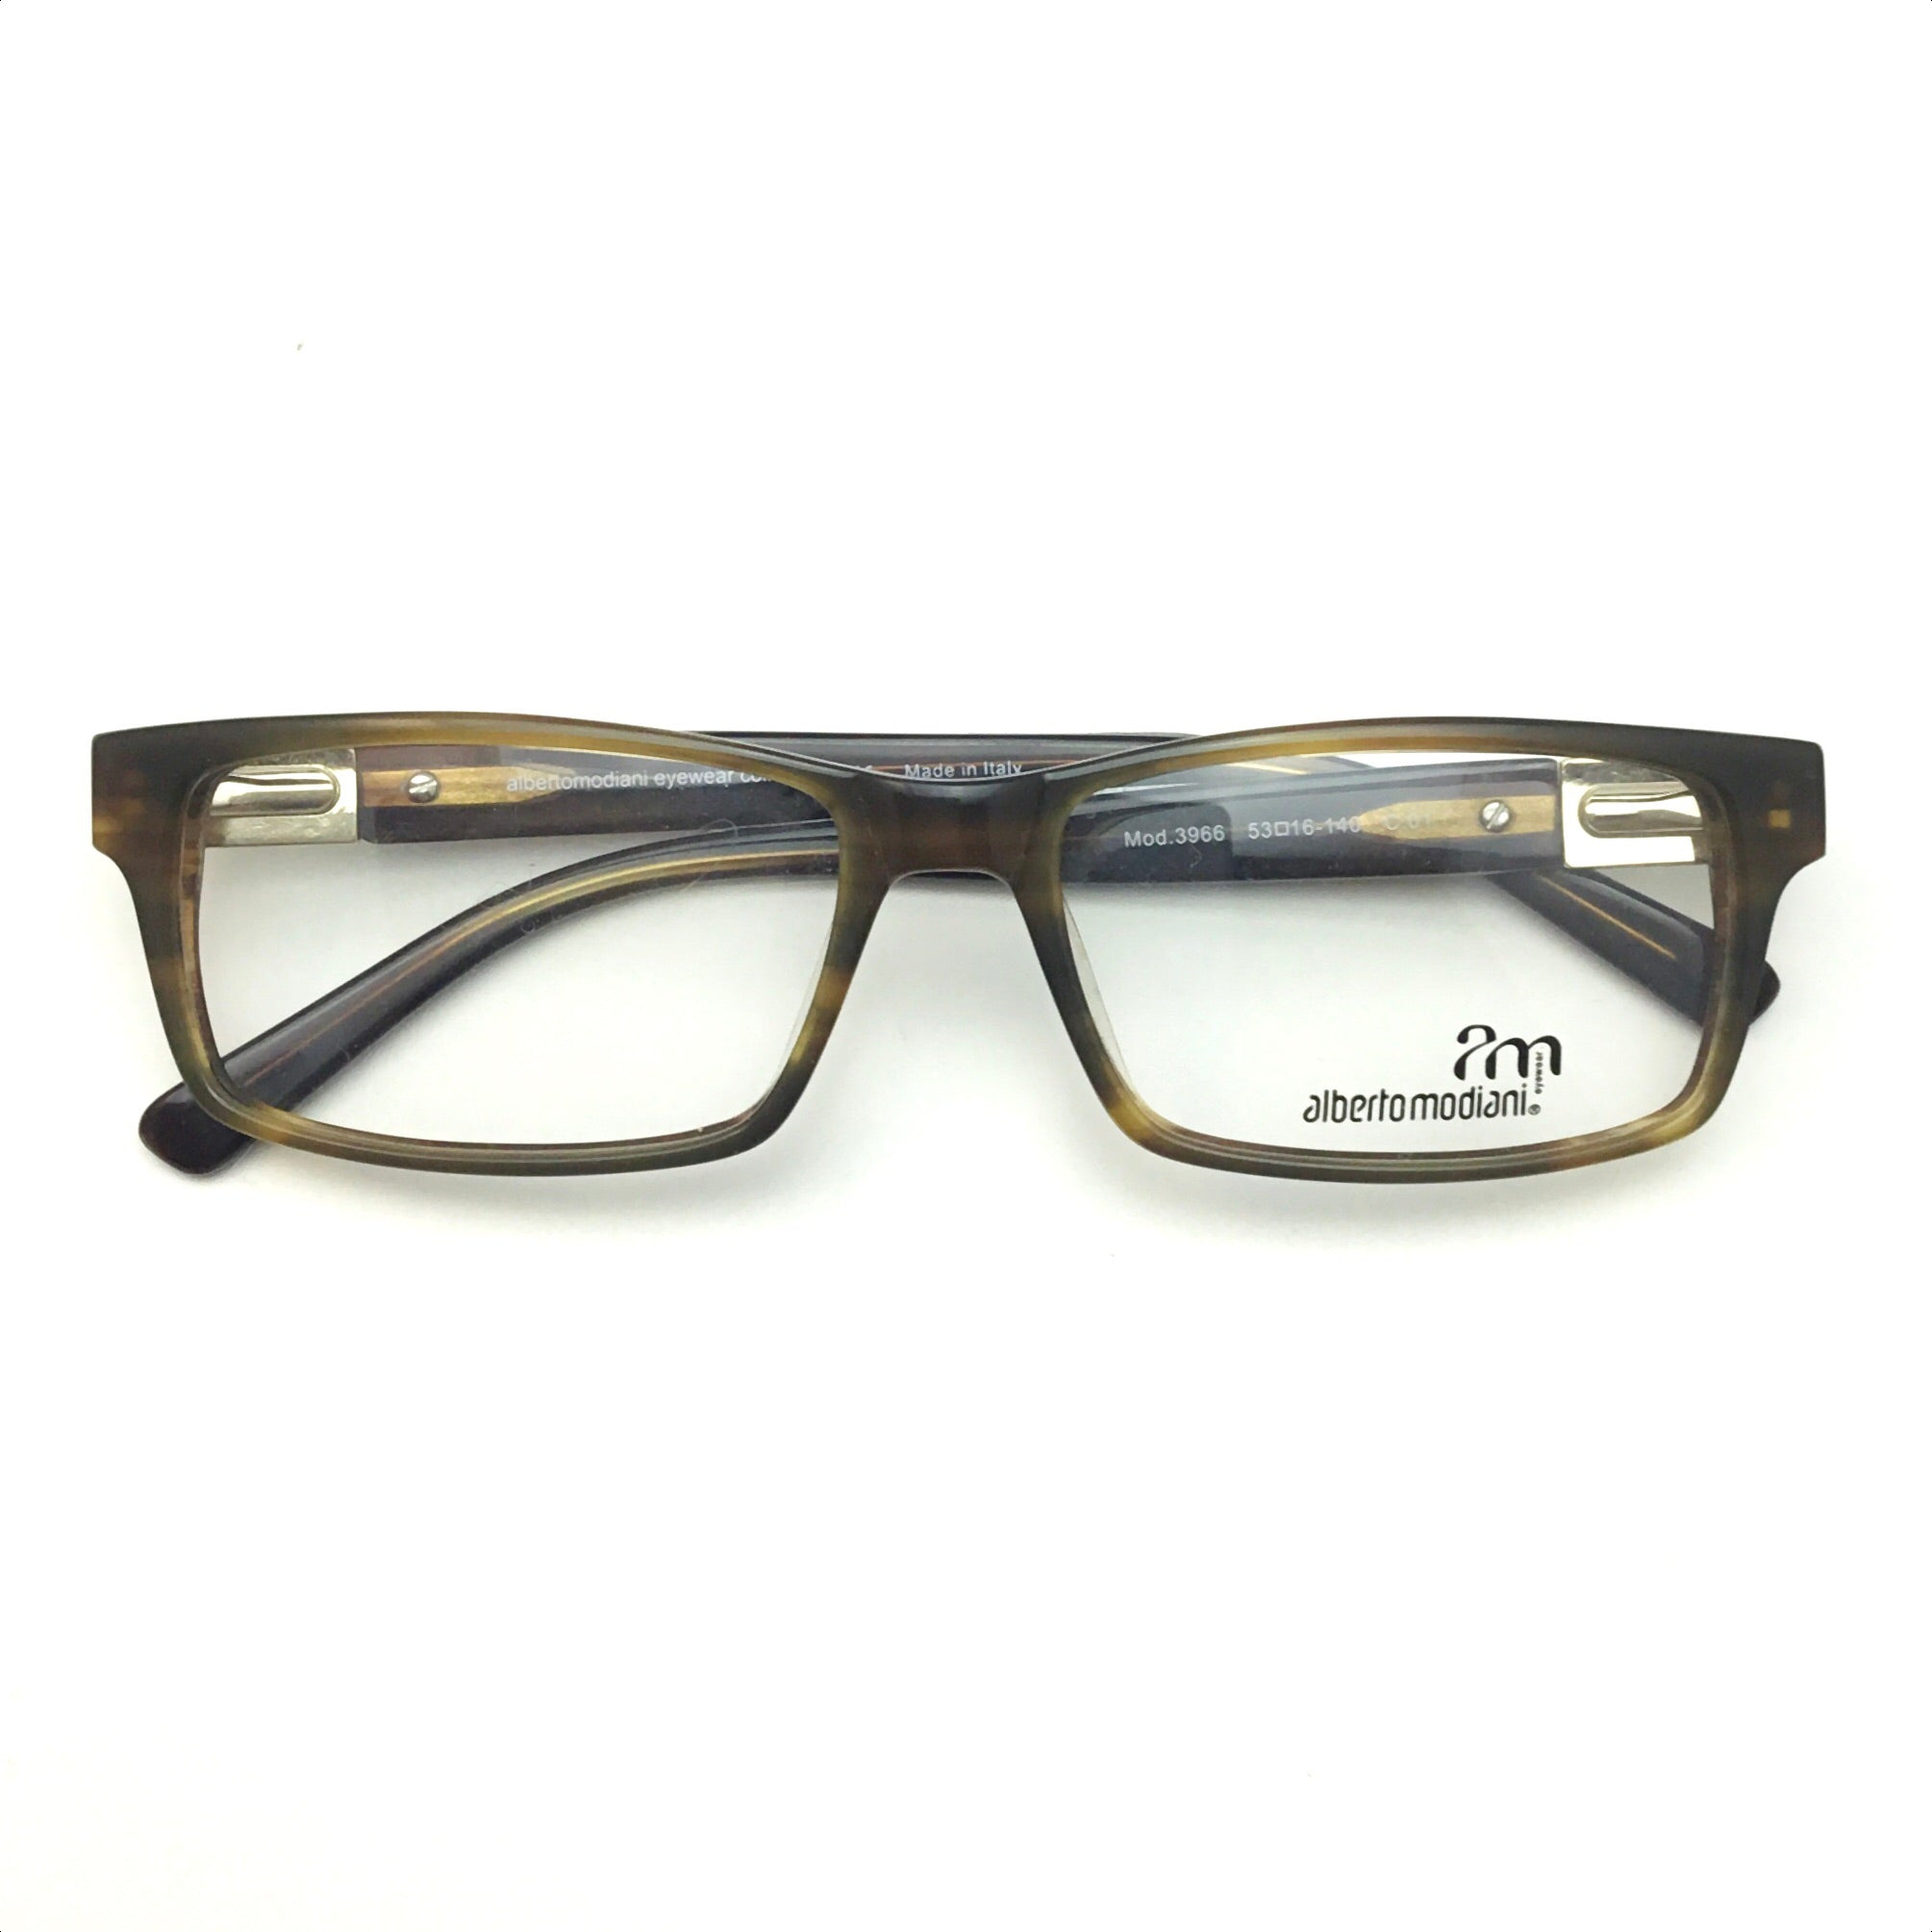 Alberto Modiani Glasses $109 Italy E18